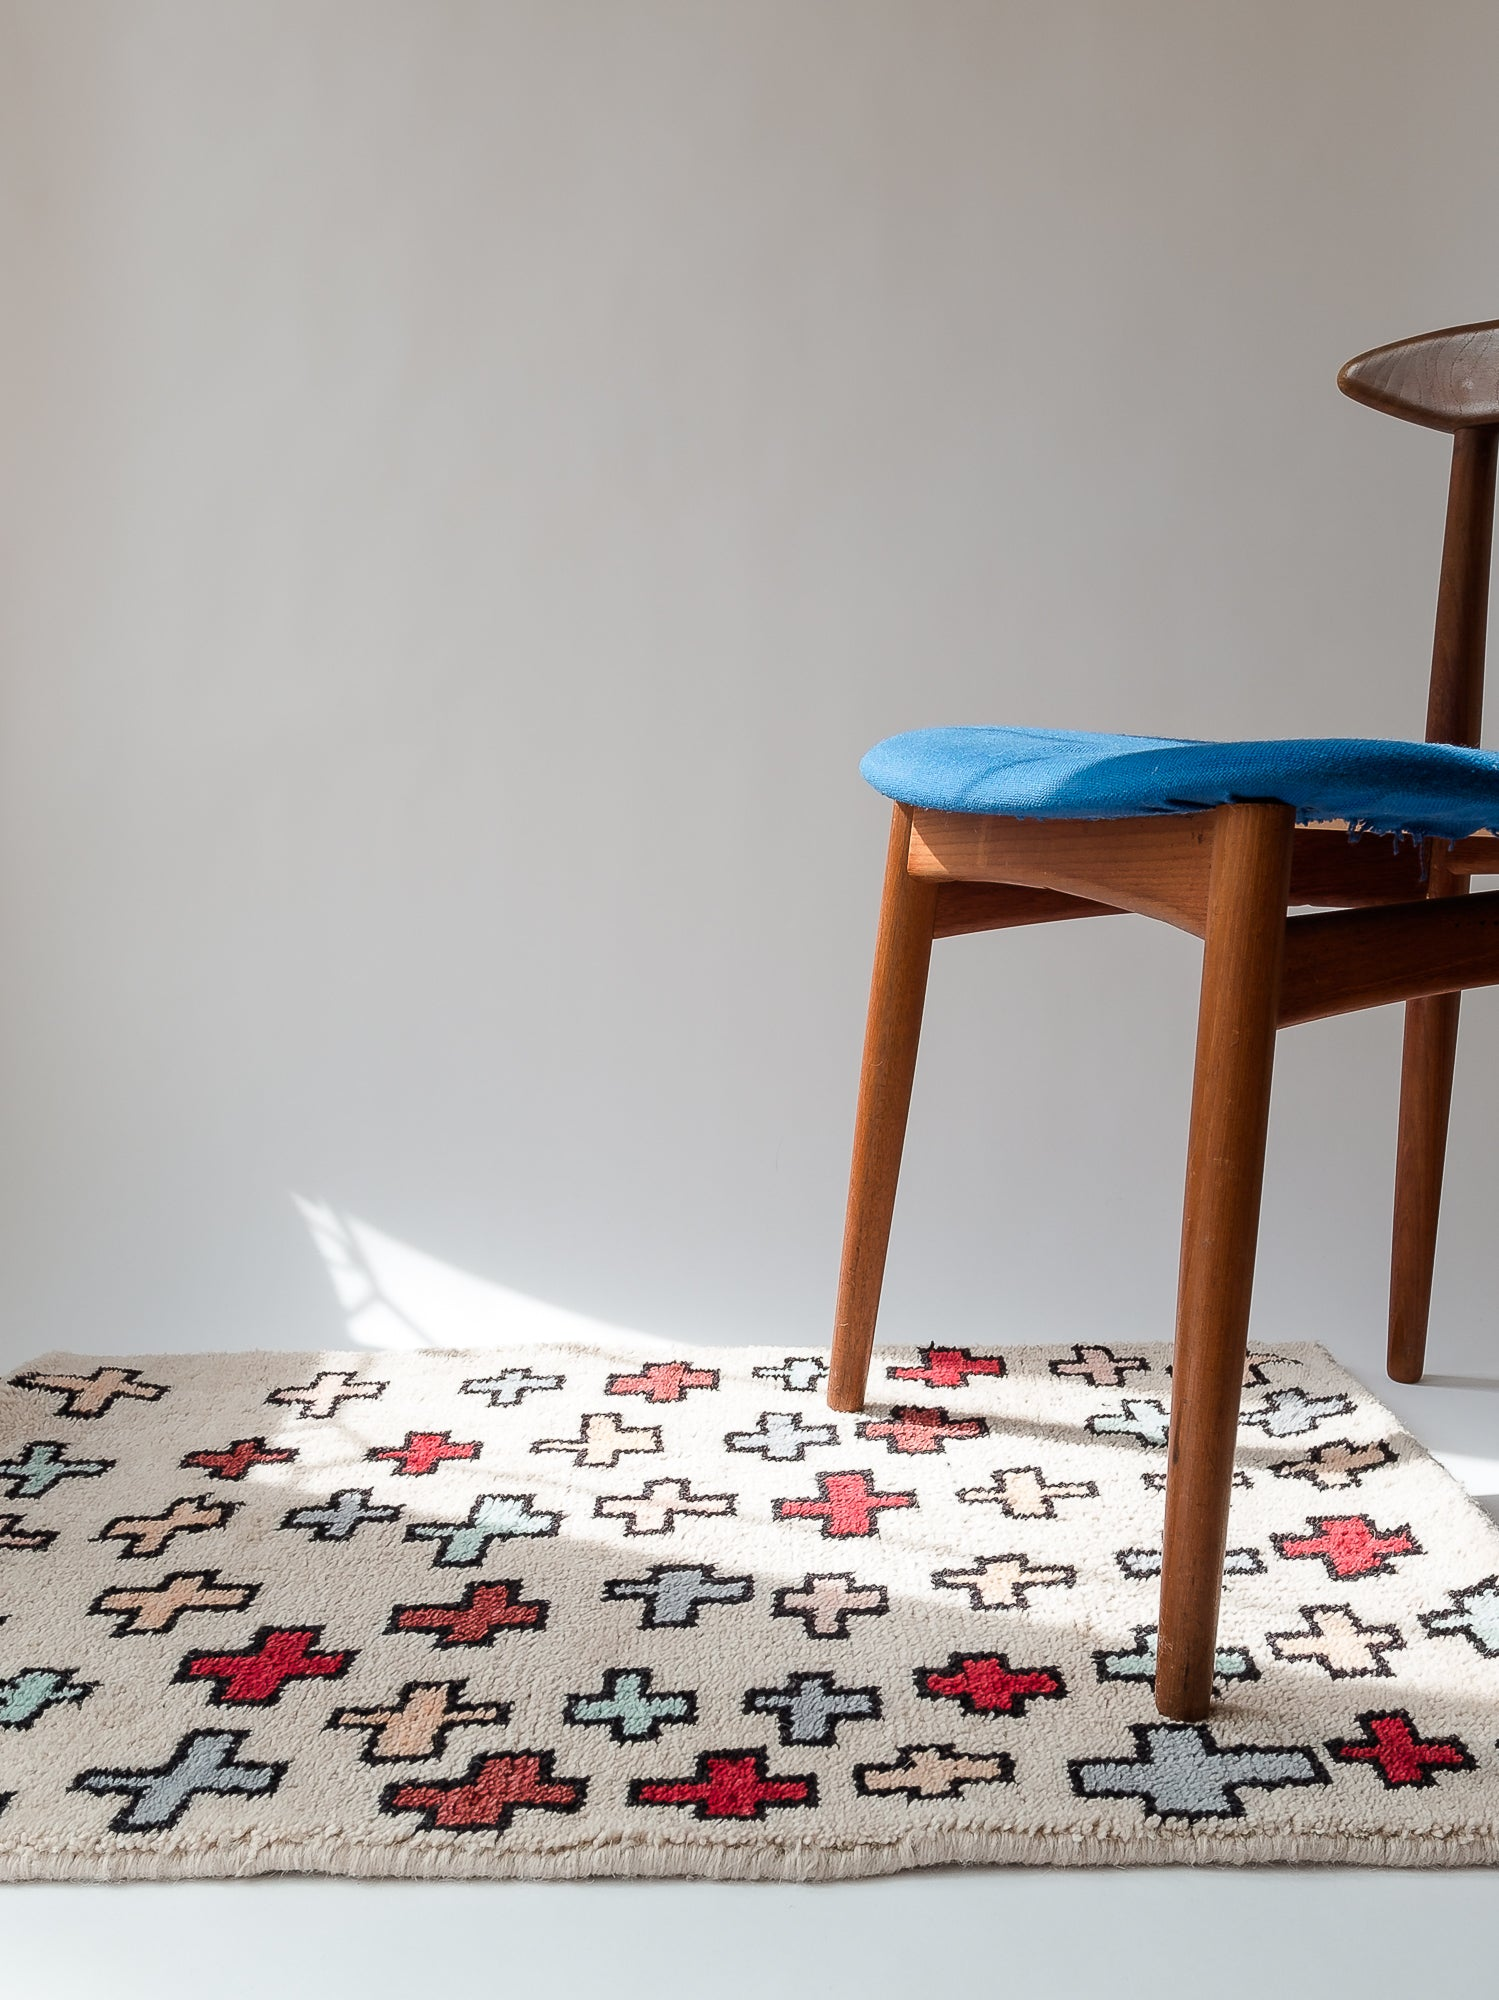 Light pink rug with red and light blue crosses sitting on the floor under a wood chair with a blue seat in a white space